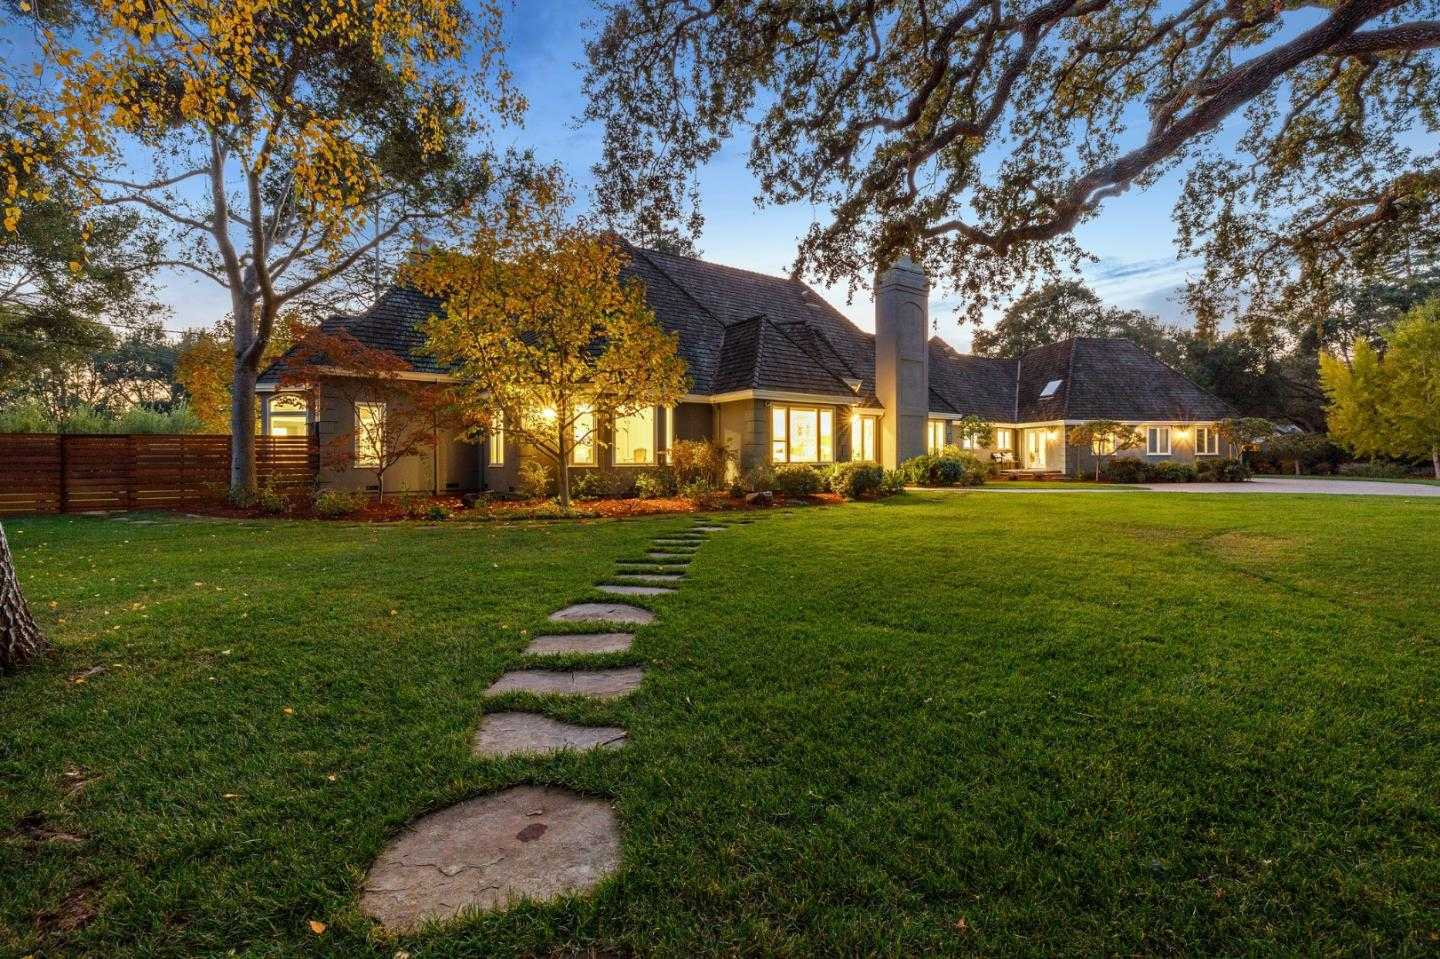 $6,650,000 - 5Br/4Ba -  for Sale in Atherton